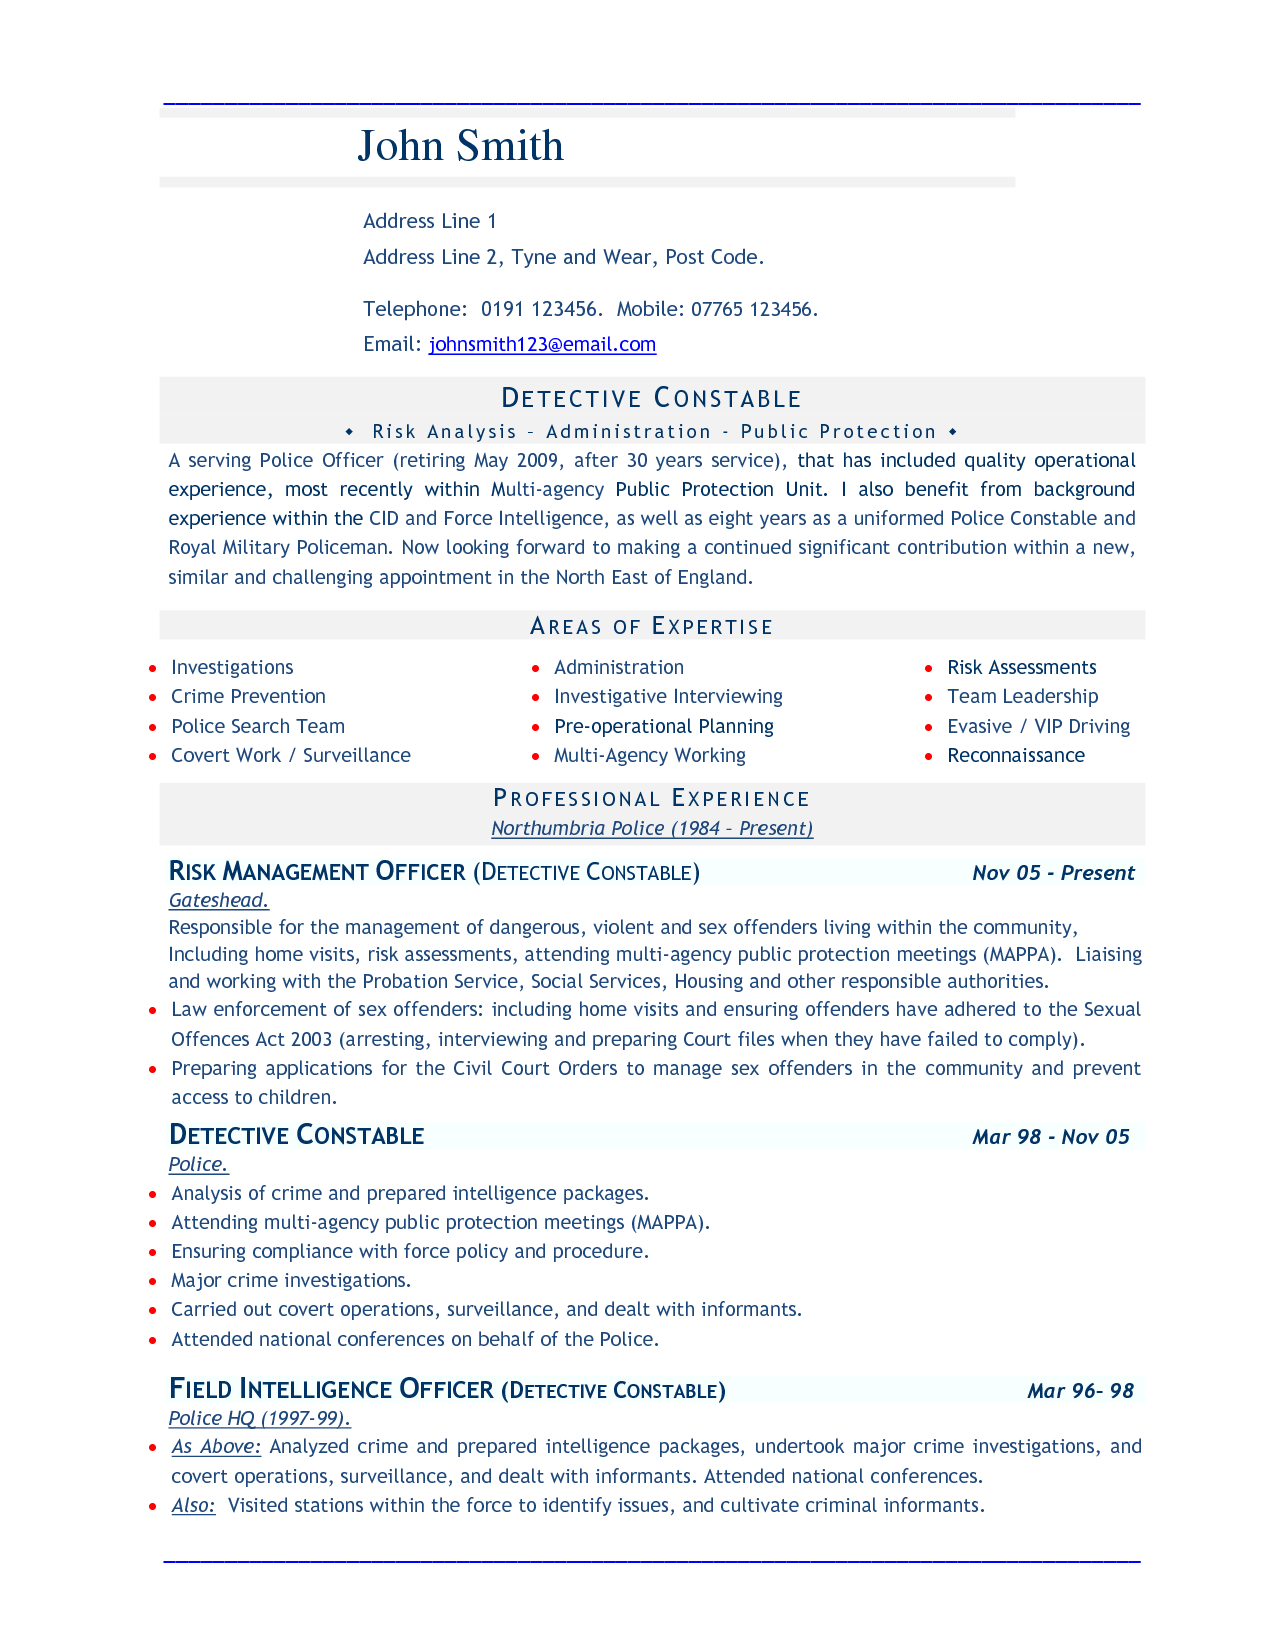 Microsoft Word  Resume Template Fresh How To Make A Add In Insp Throughout How To Find A Resume Template On Word